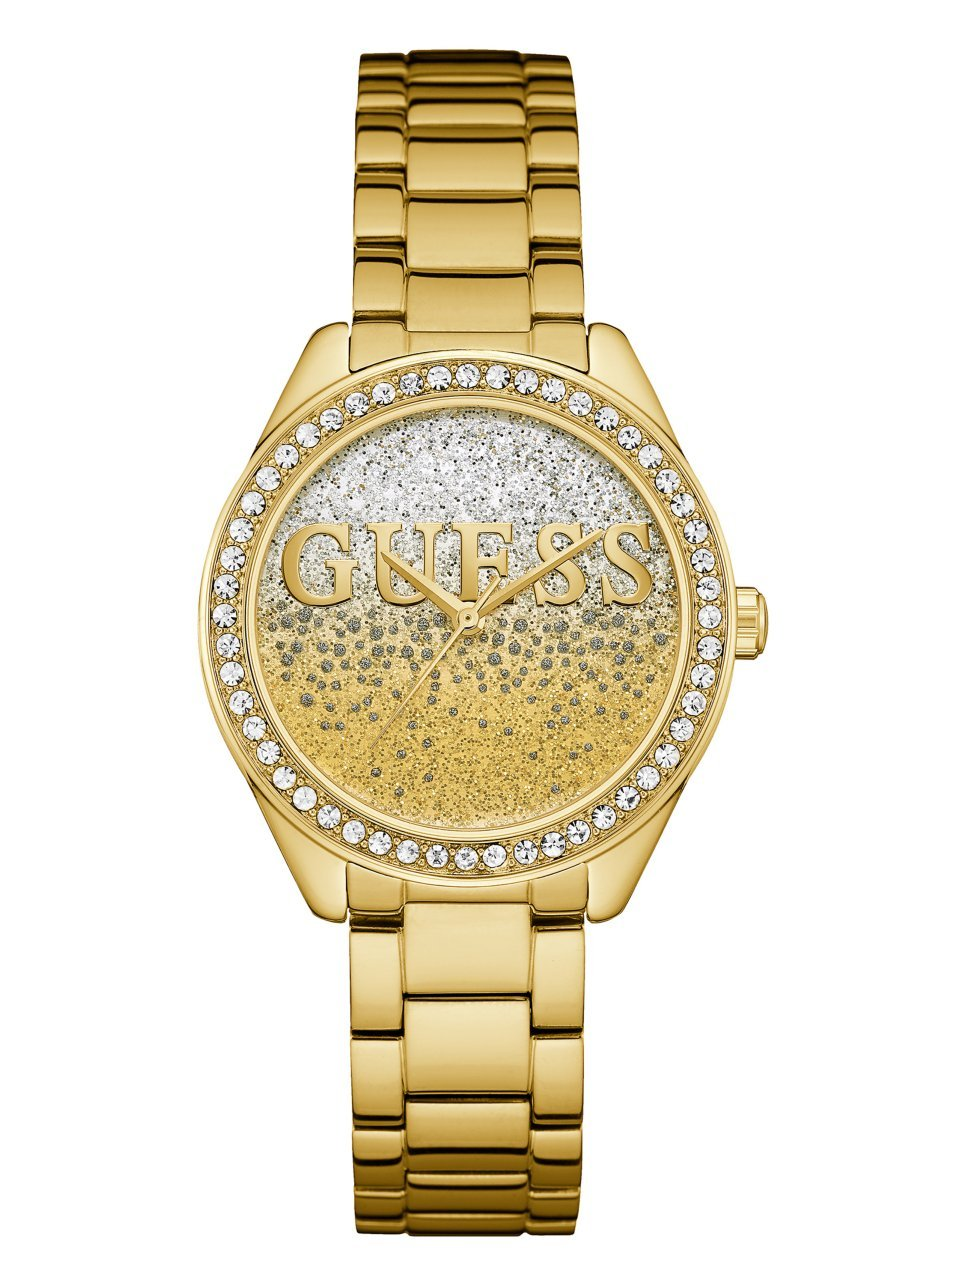 GUESS Women's Quartz Stainless Steel Casual Watch, Color:Gold-Toned (Model: U0987L2) by GUESS